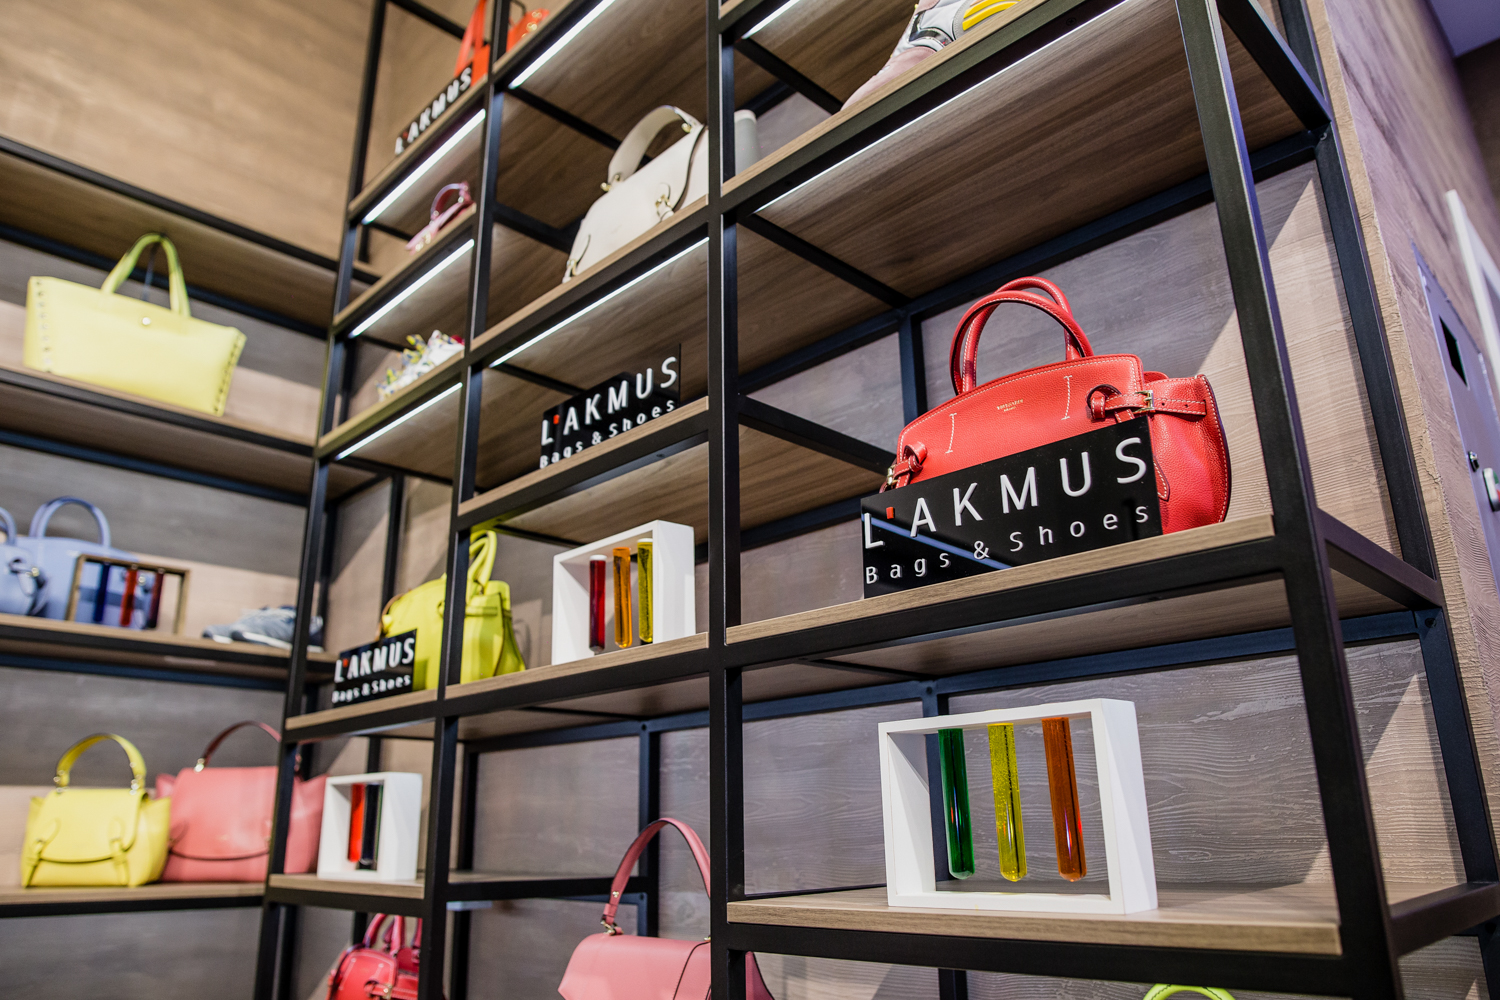 L'AKMUS Bags & Shoes Store Opening in Ocean Plaza